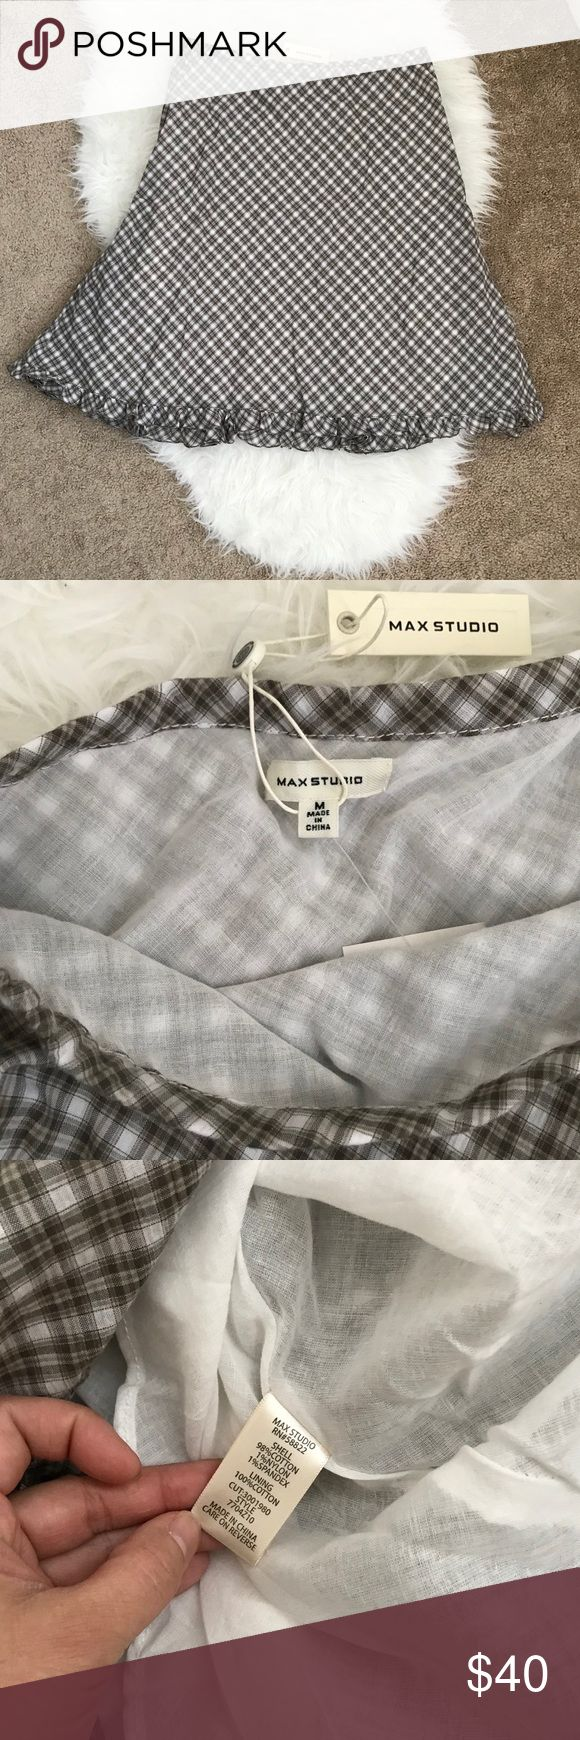 """NWT Max Studio Checkered Olive/White Skirt Size Medium Material: Shell: 98% cotton, 1% Nylon, 1% Spandex. Lining: 100% cotton Features: Ruffle like trimmings on the bottom, elastic waist, triangle shape pleats design on the back. Please see photos.  App measurements: 15"""" waist, 22.5 Length Max Studio Skirts A-Line or Full"""